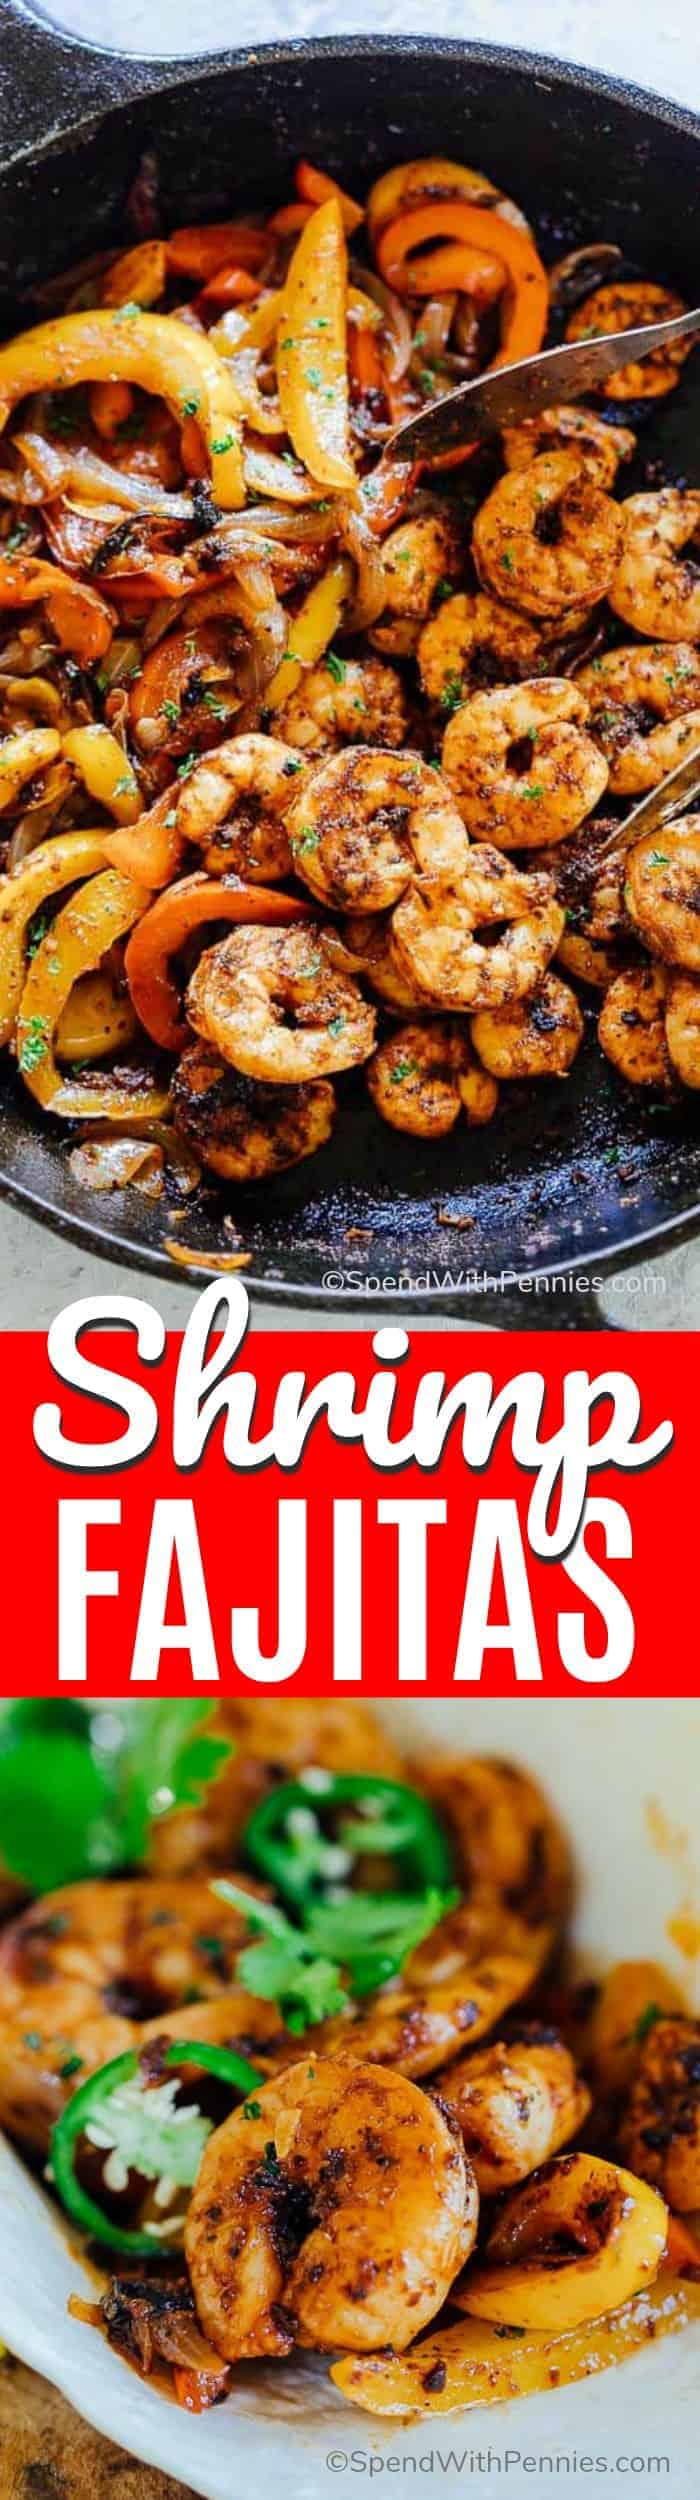 Shrimp fajitas in a pan and on a plate with writing